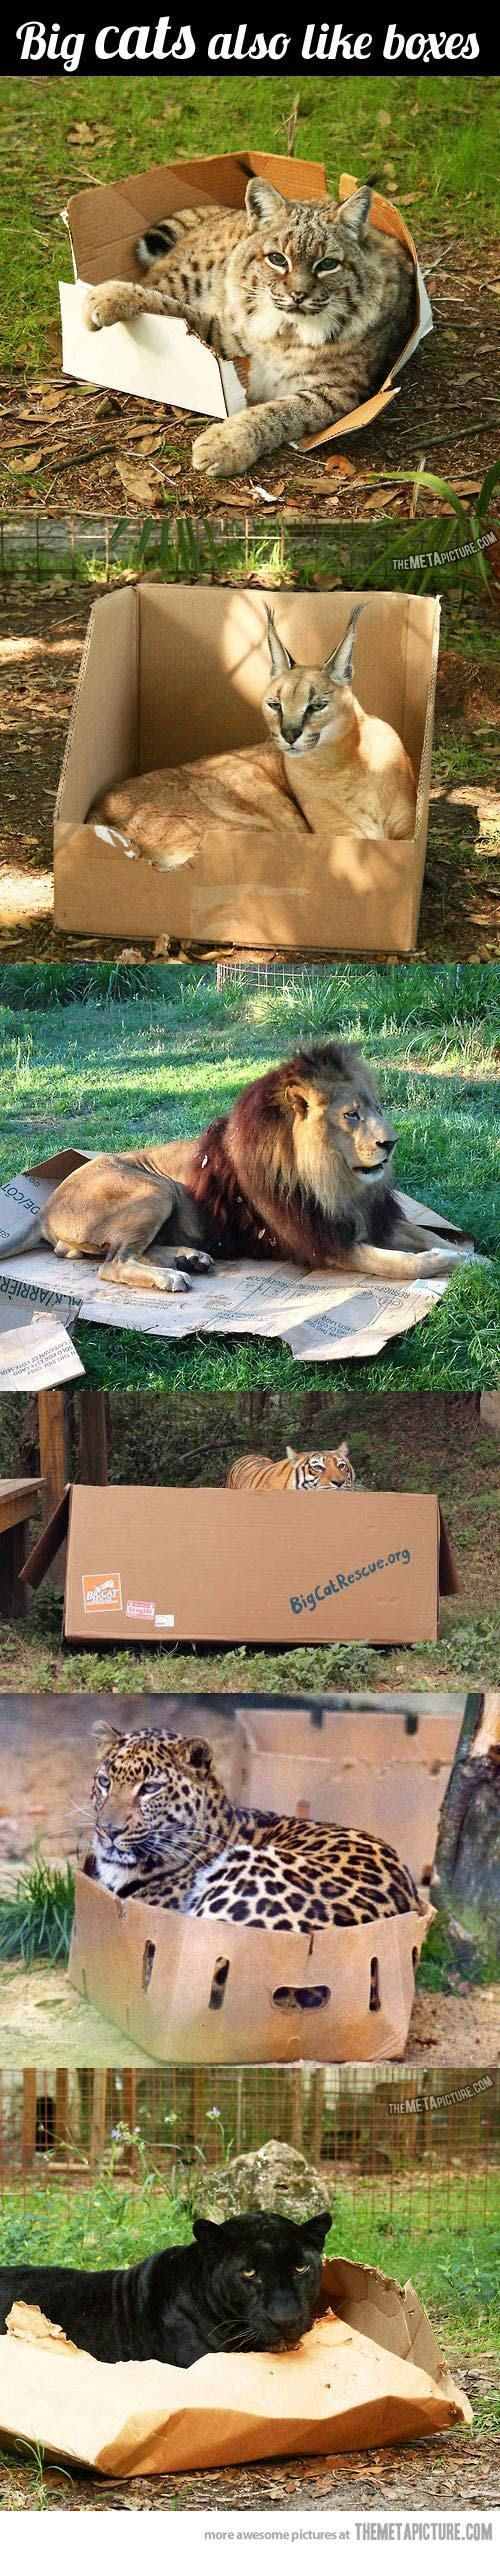 8 Funny Cats in Boxes